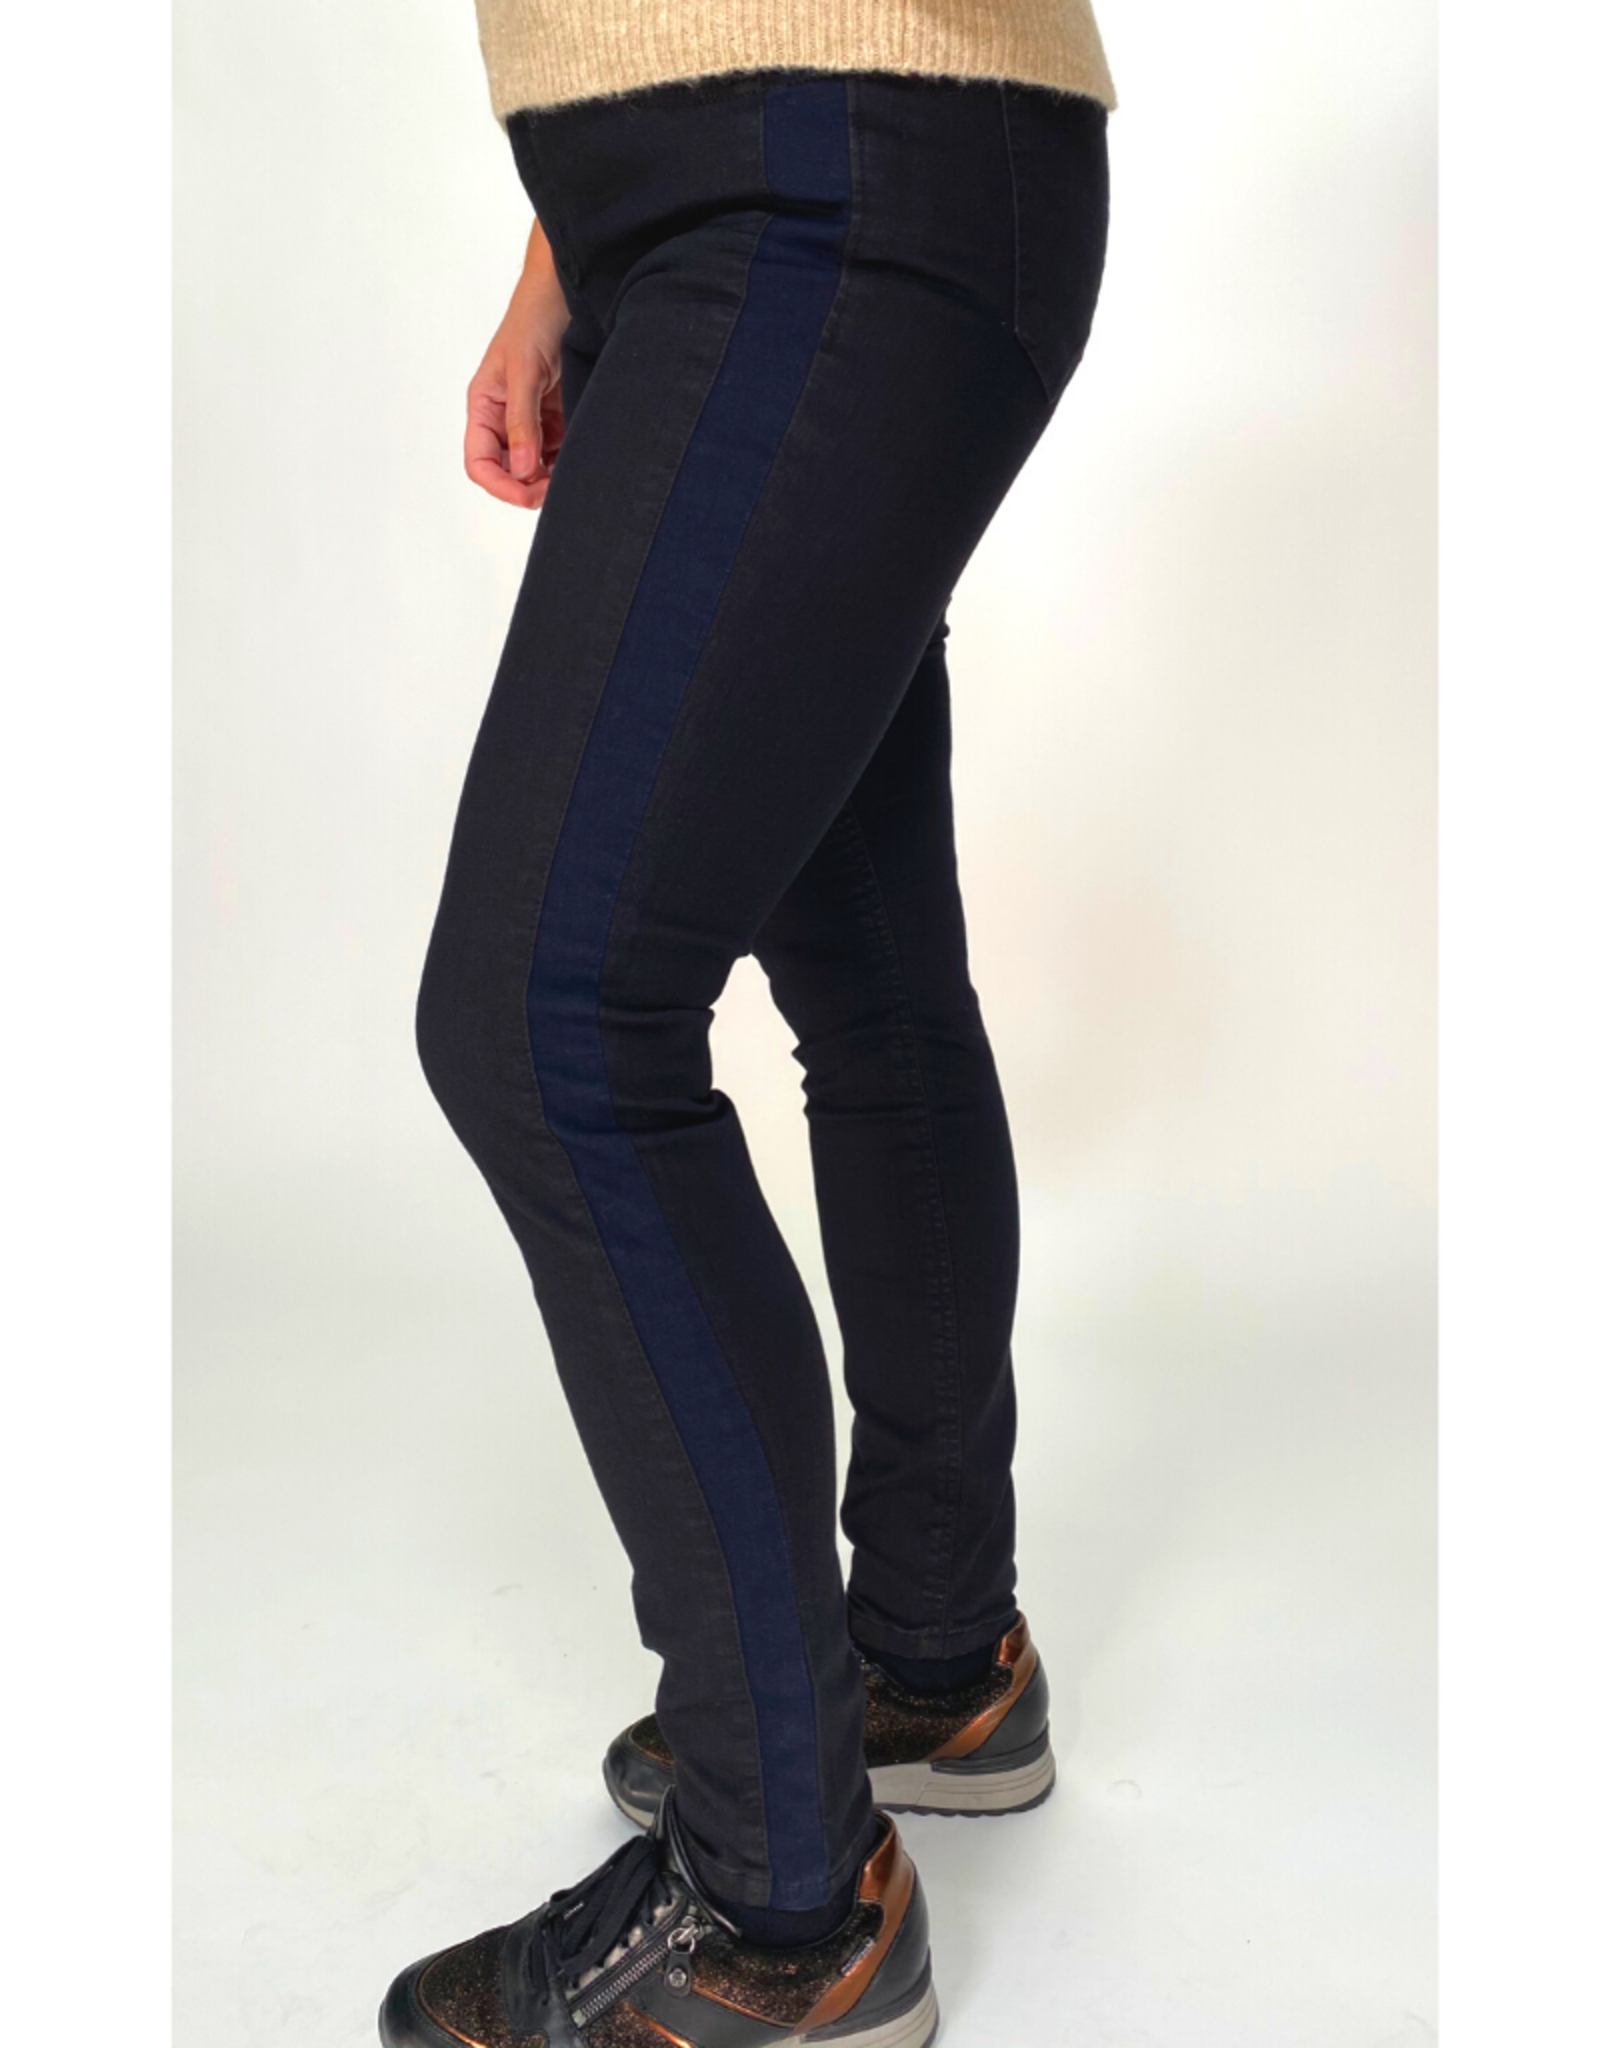 Angels jeans 126030-399/10 one size Galon patch